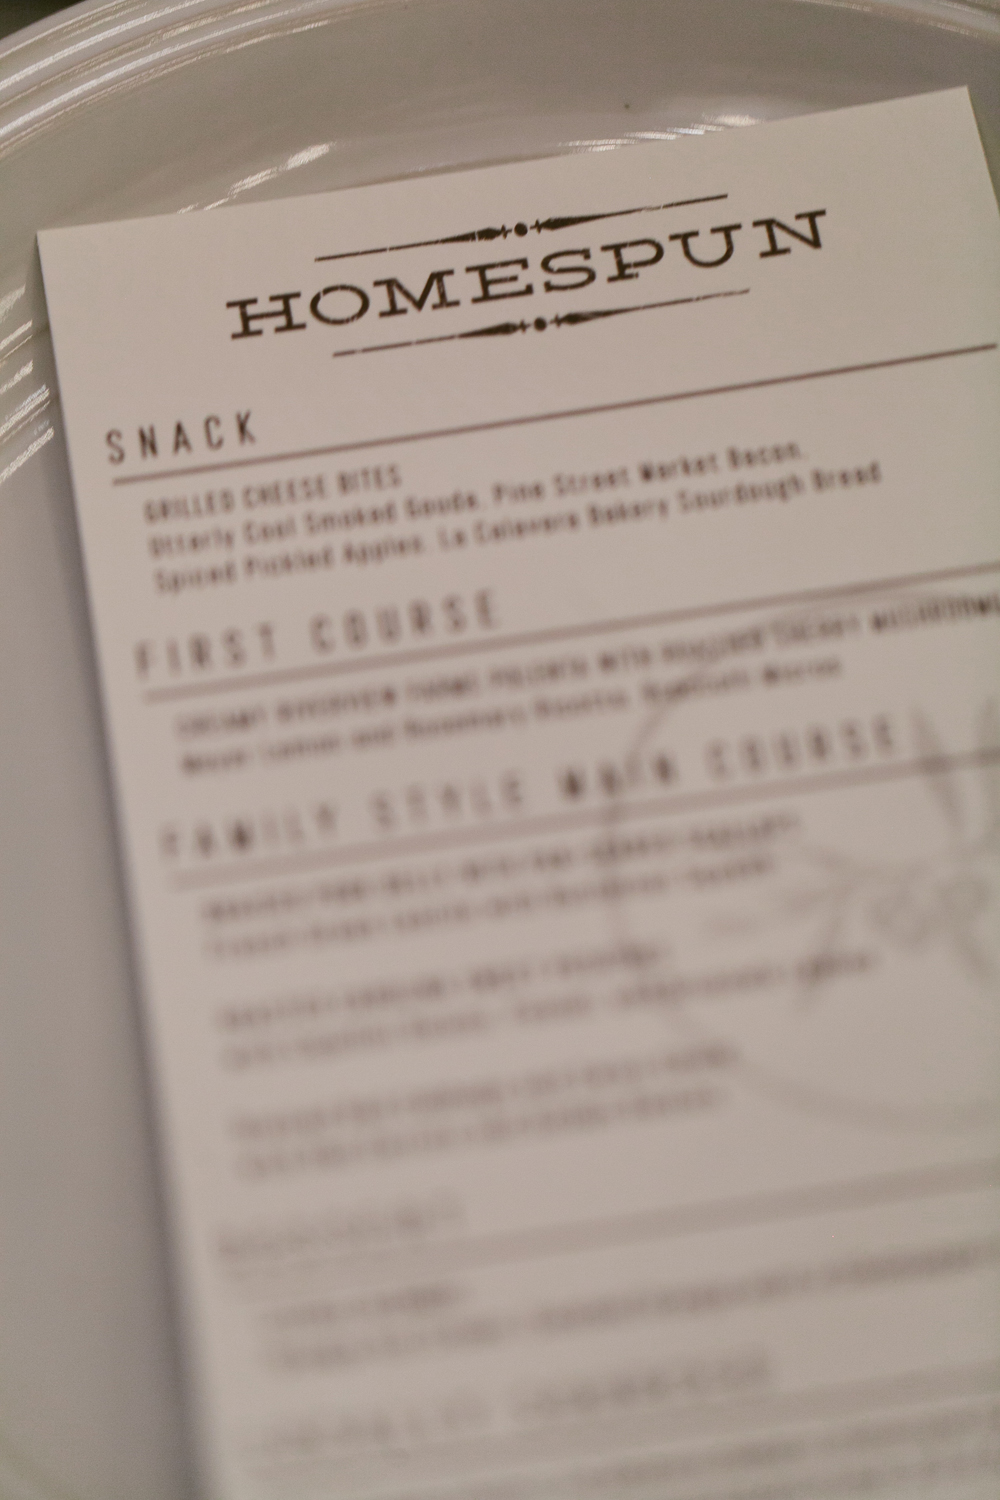 Homespun ATL Dinner Jan 2014 Atlanta, GA Photography by Kathryn McCrary_Web175.jpg